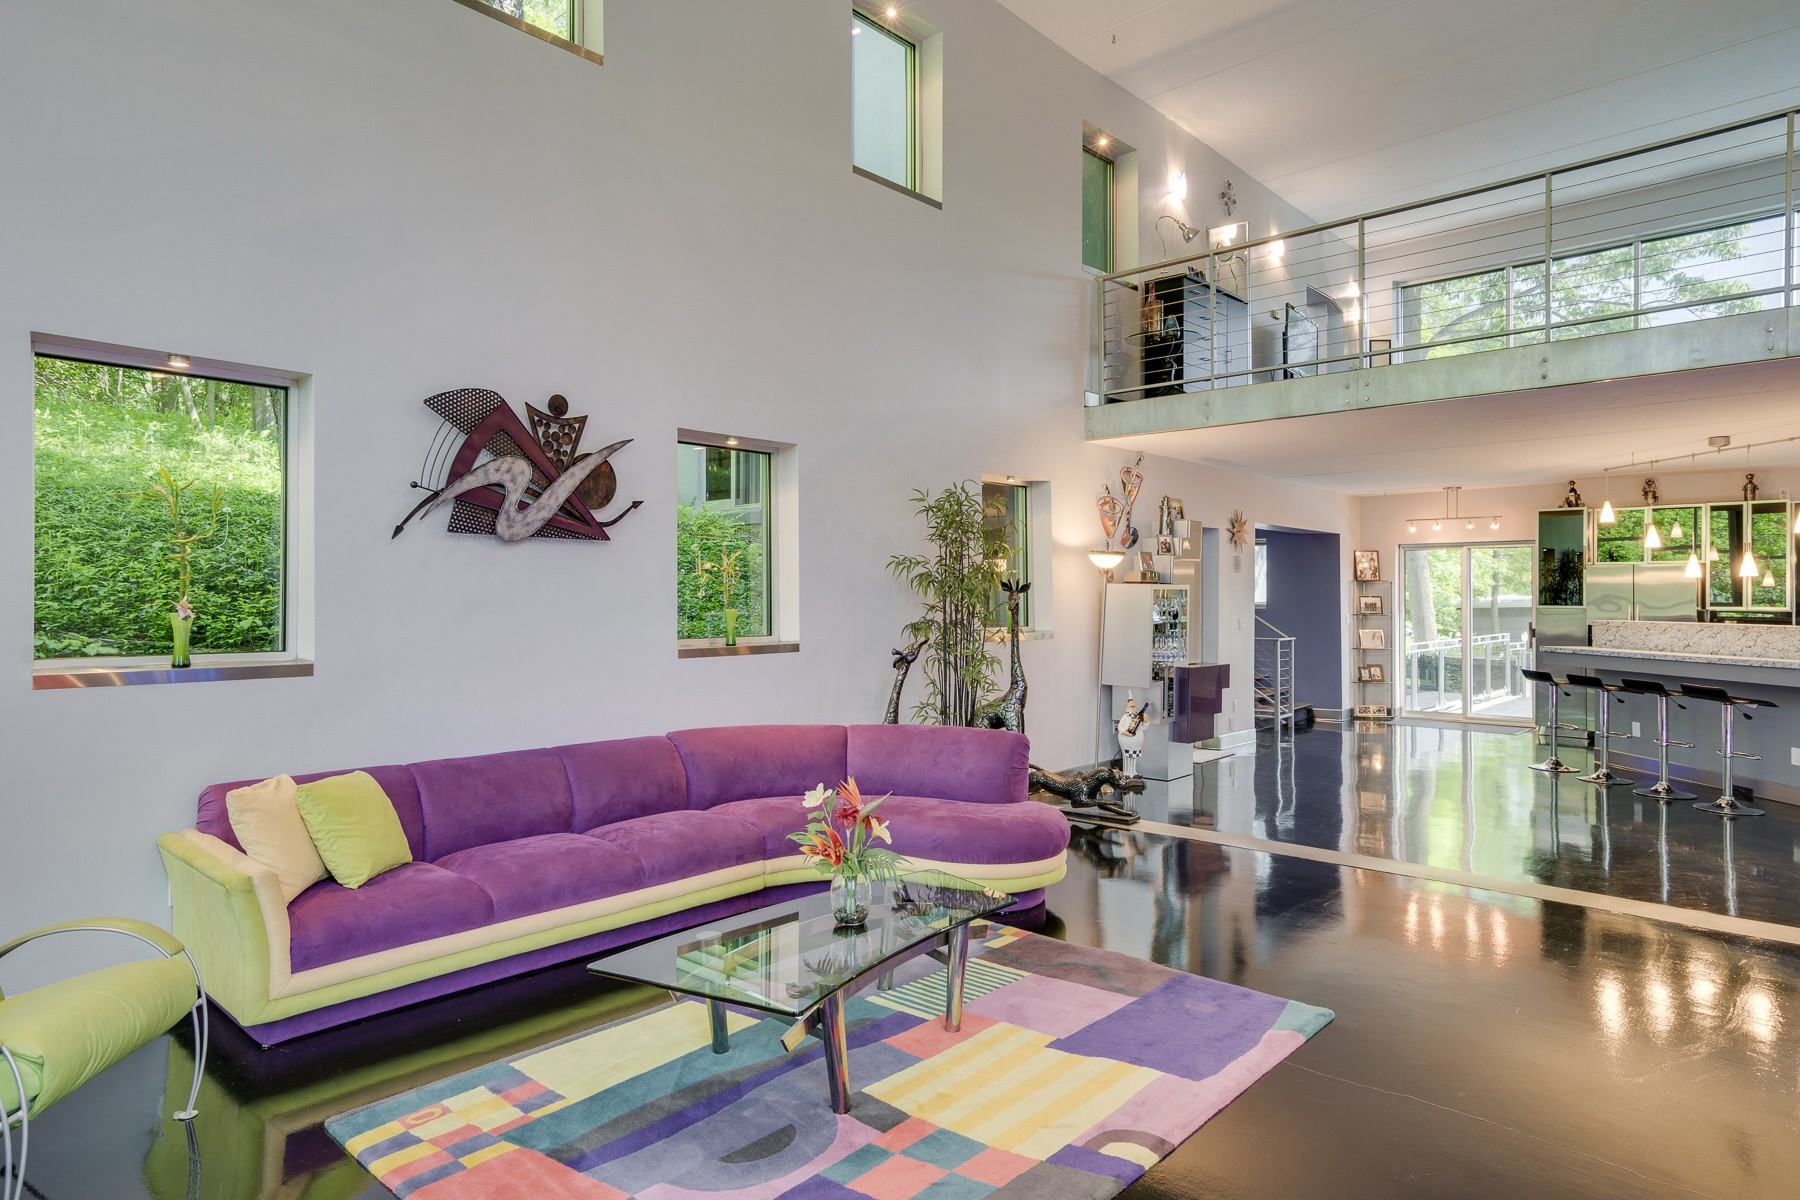 Additional photo for property listing at Spectacular Contemporary Living! 1430  Bullis Rd 埃尔玛, 纽约州 14059 美国